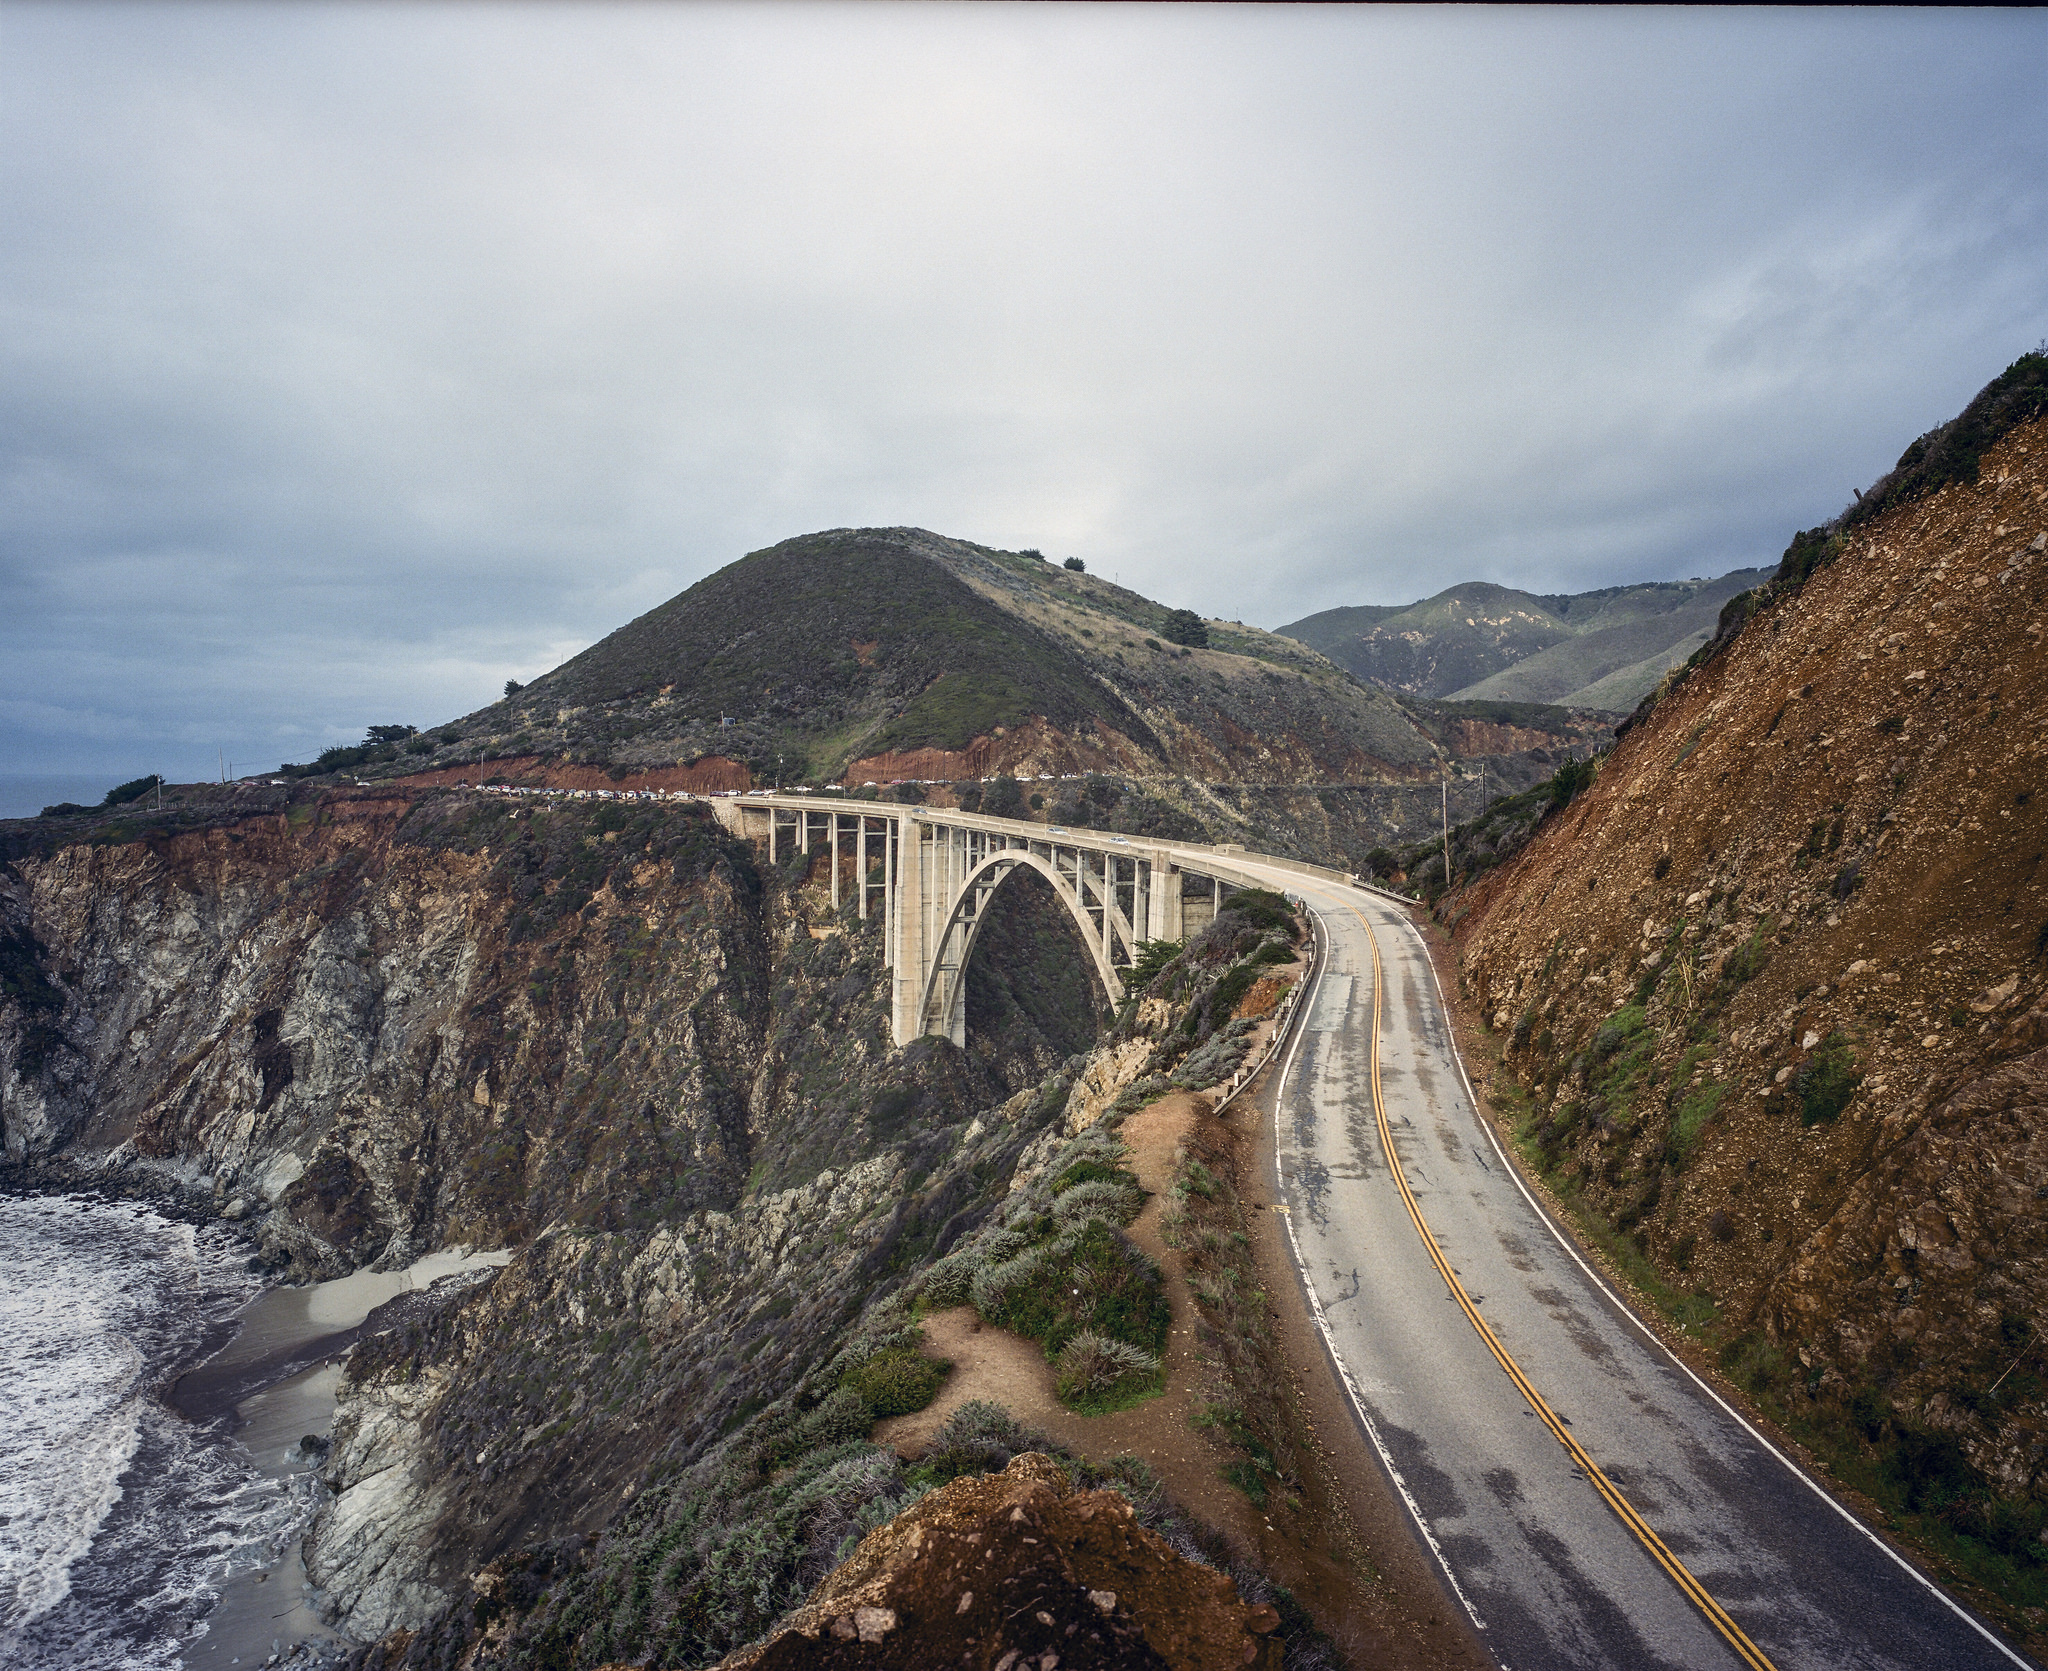 Photograph of a highway bridge going between two mountains over the ocean